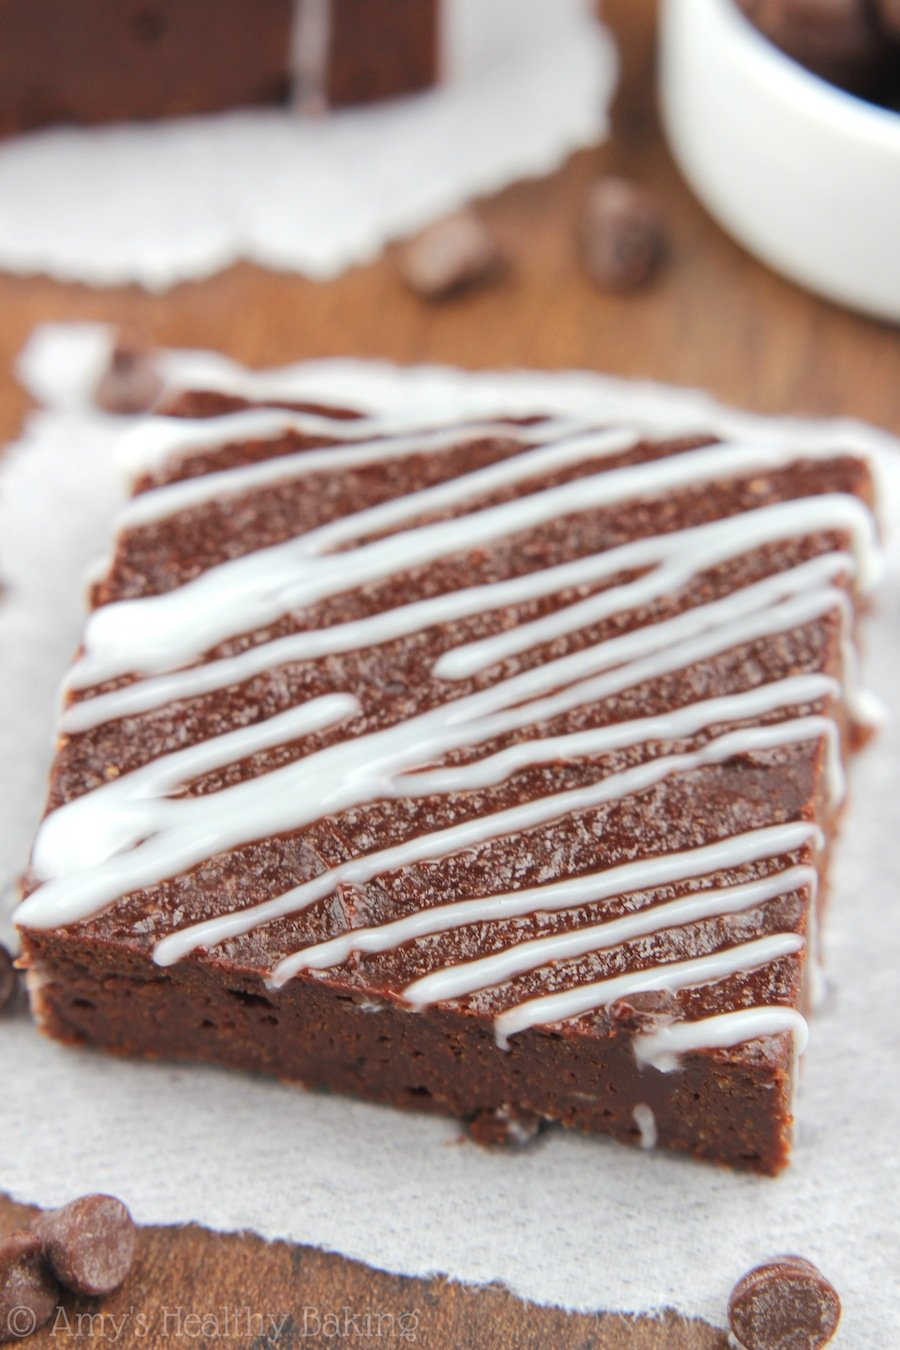 {Healthy} Peppermint Drizzled Chocolate Fudge Brownies -- only 89 calories & NO refined flour or sugar! You'll never need another recipe. These literally taste like fudge!